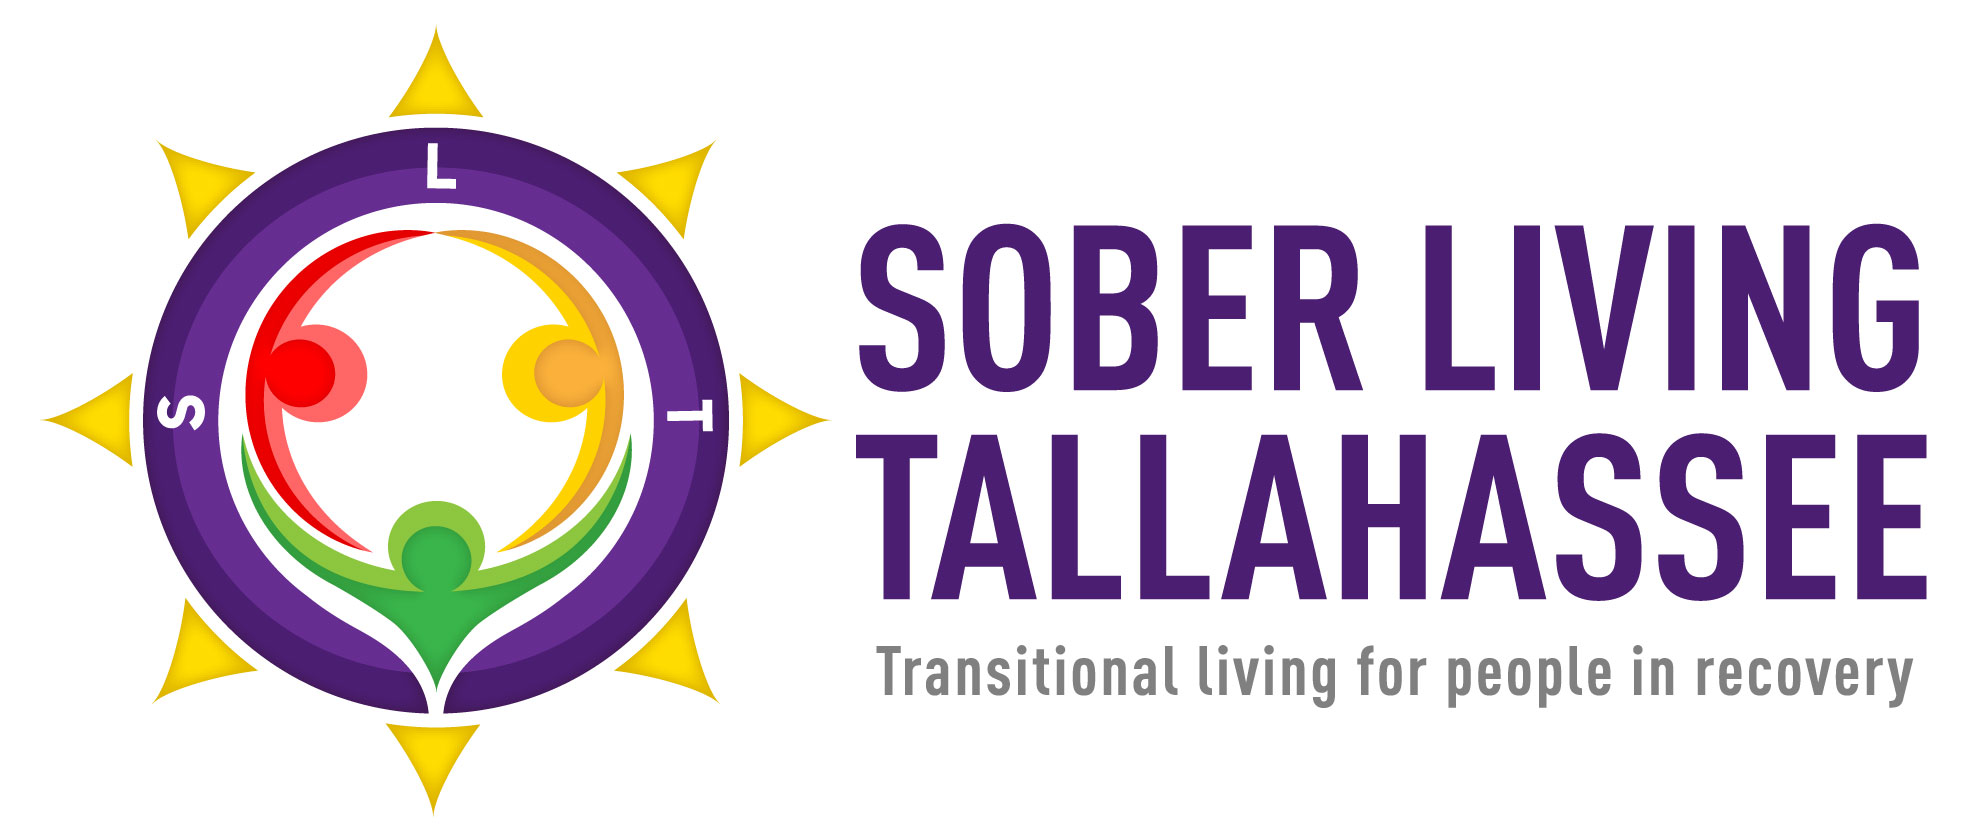 Sober Living Tallahassee